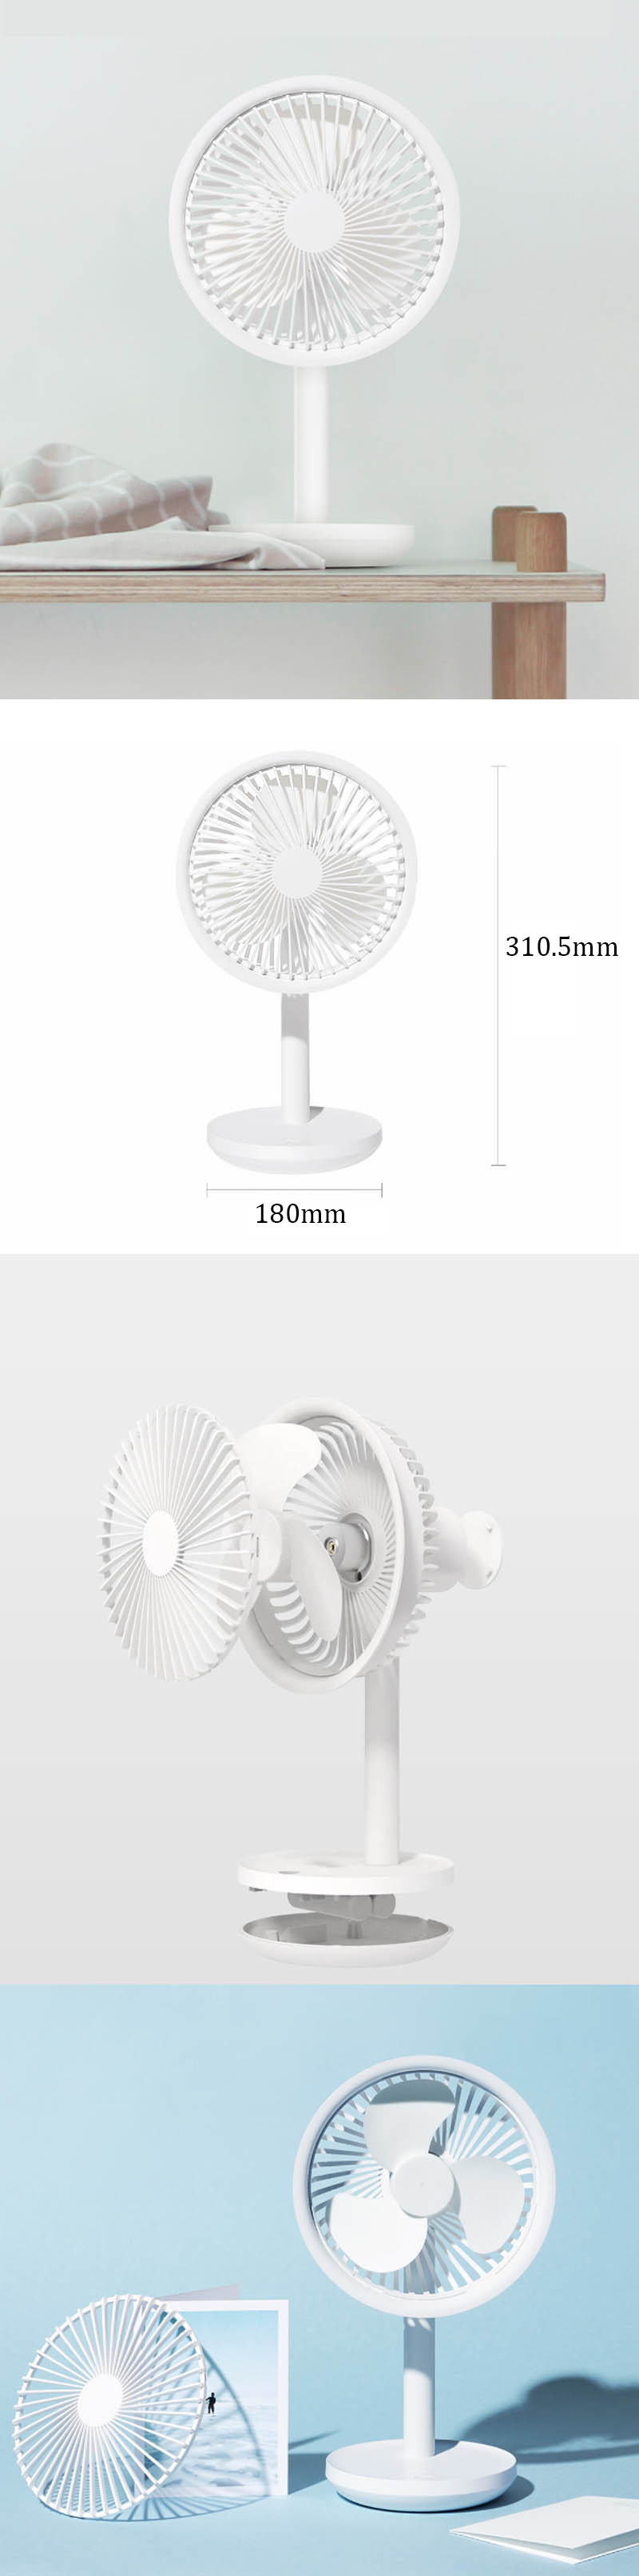 Xiaomi SOLOVE 5W USB Desktop Table Fan 3 Modes Wind Speed Cooling Oscillating Fan